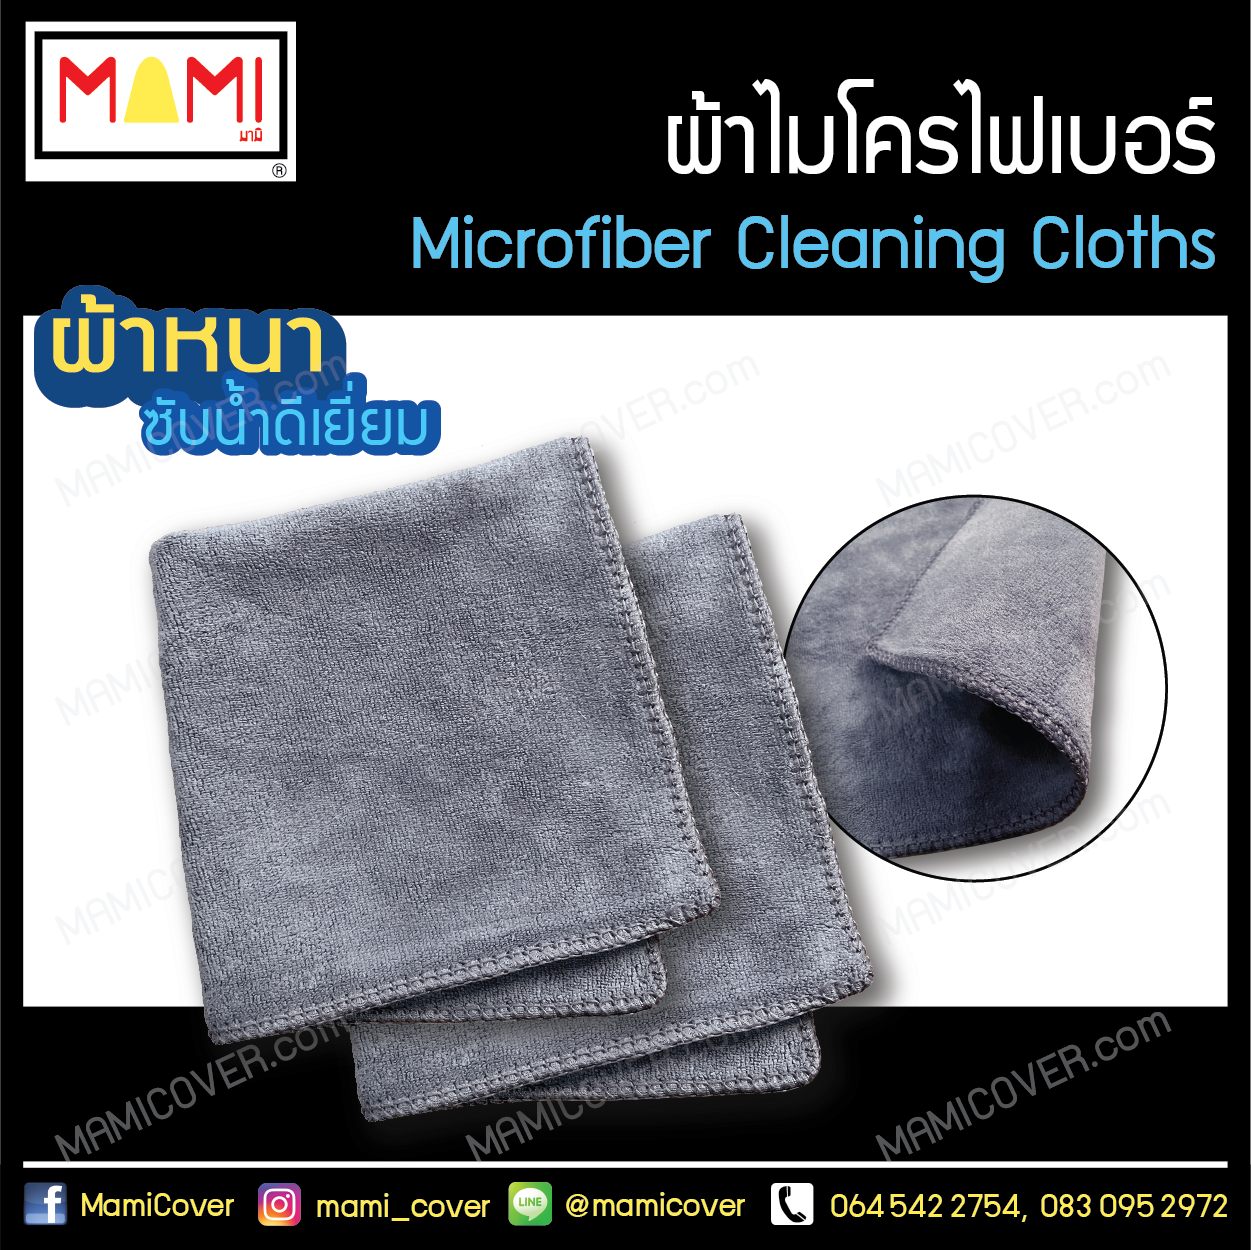 Microfiber Cleaning Cloths category cover